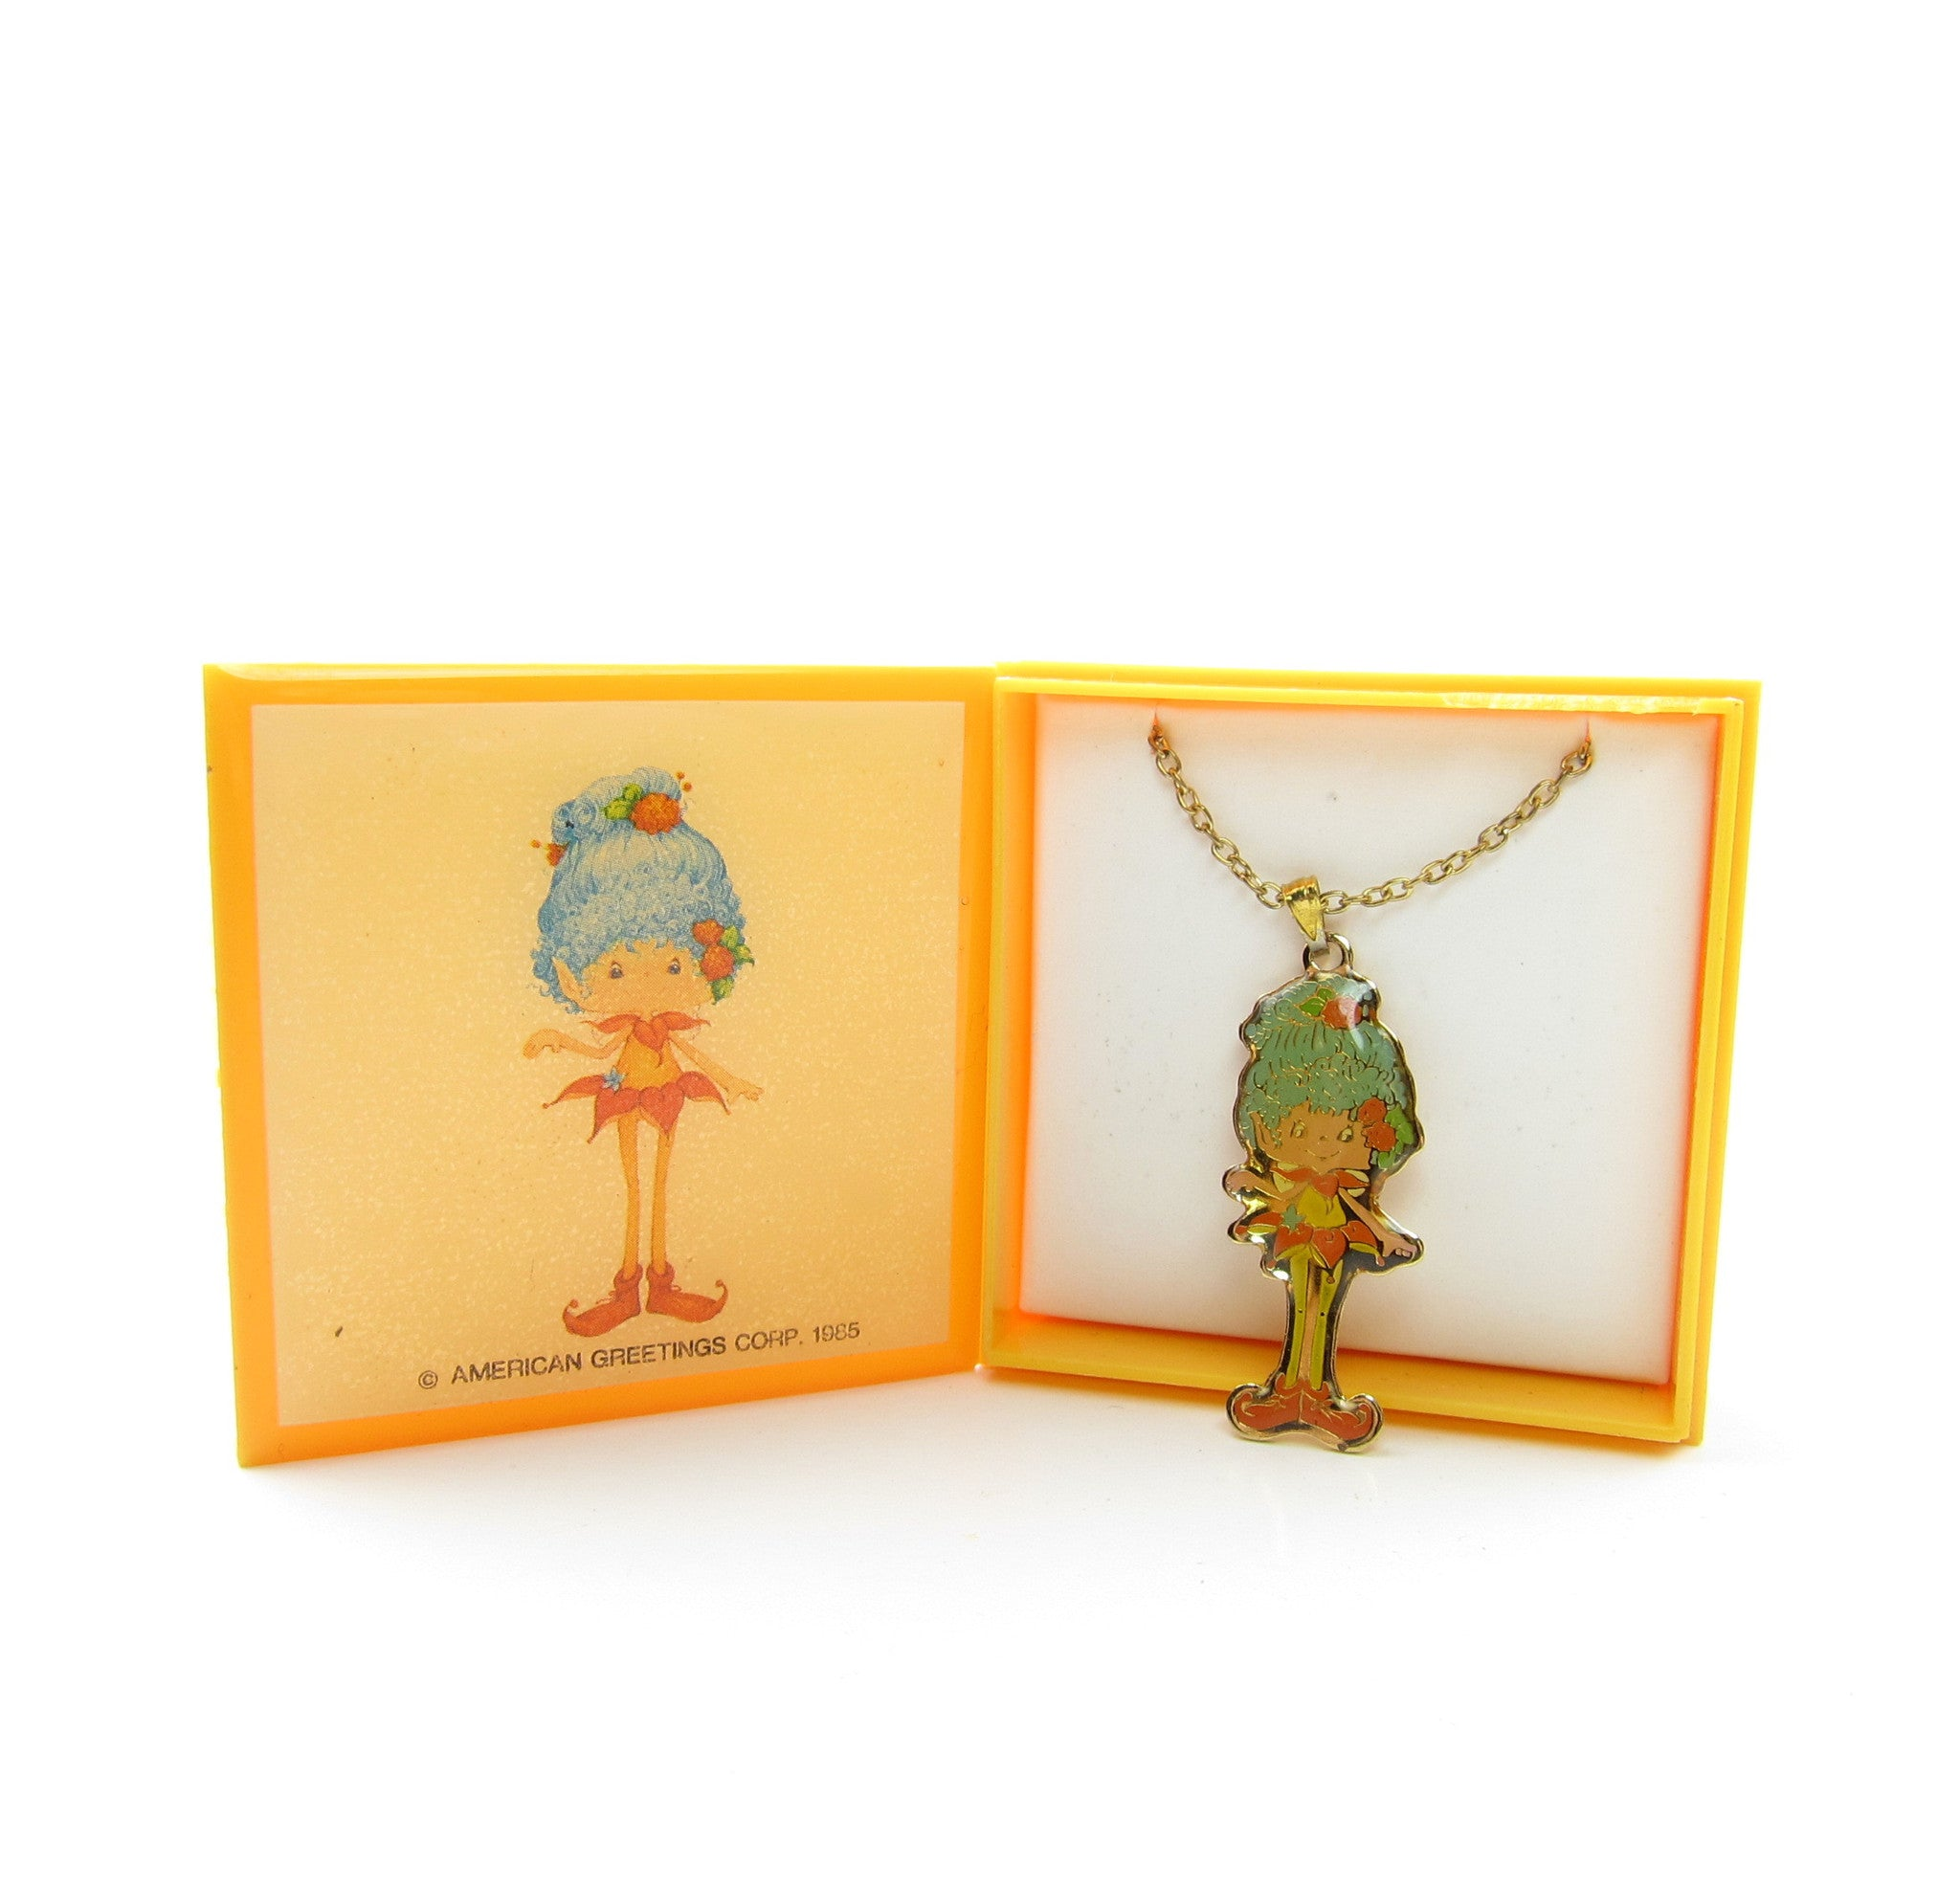 Willow Song Herself the Elf necklace in gift box